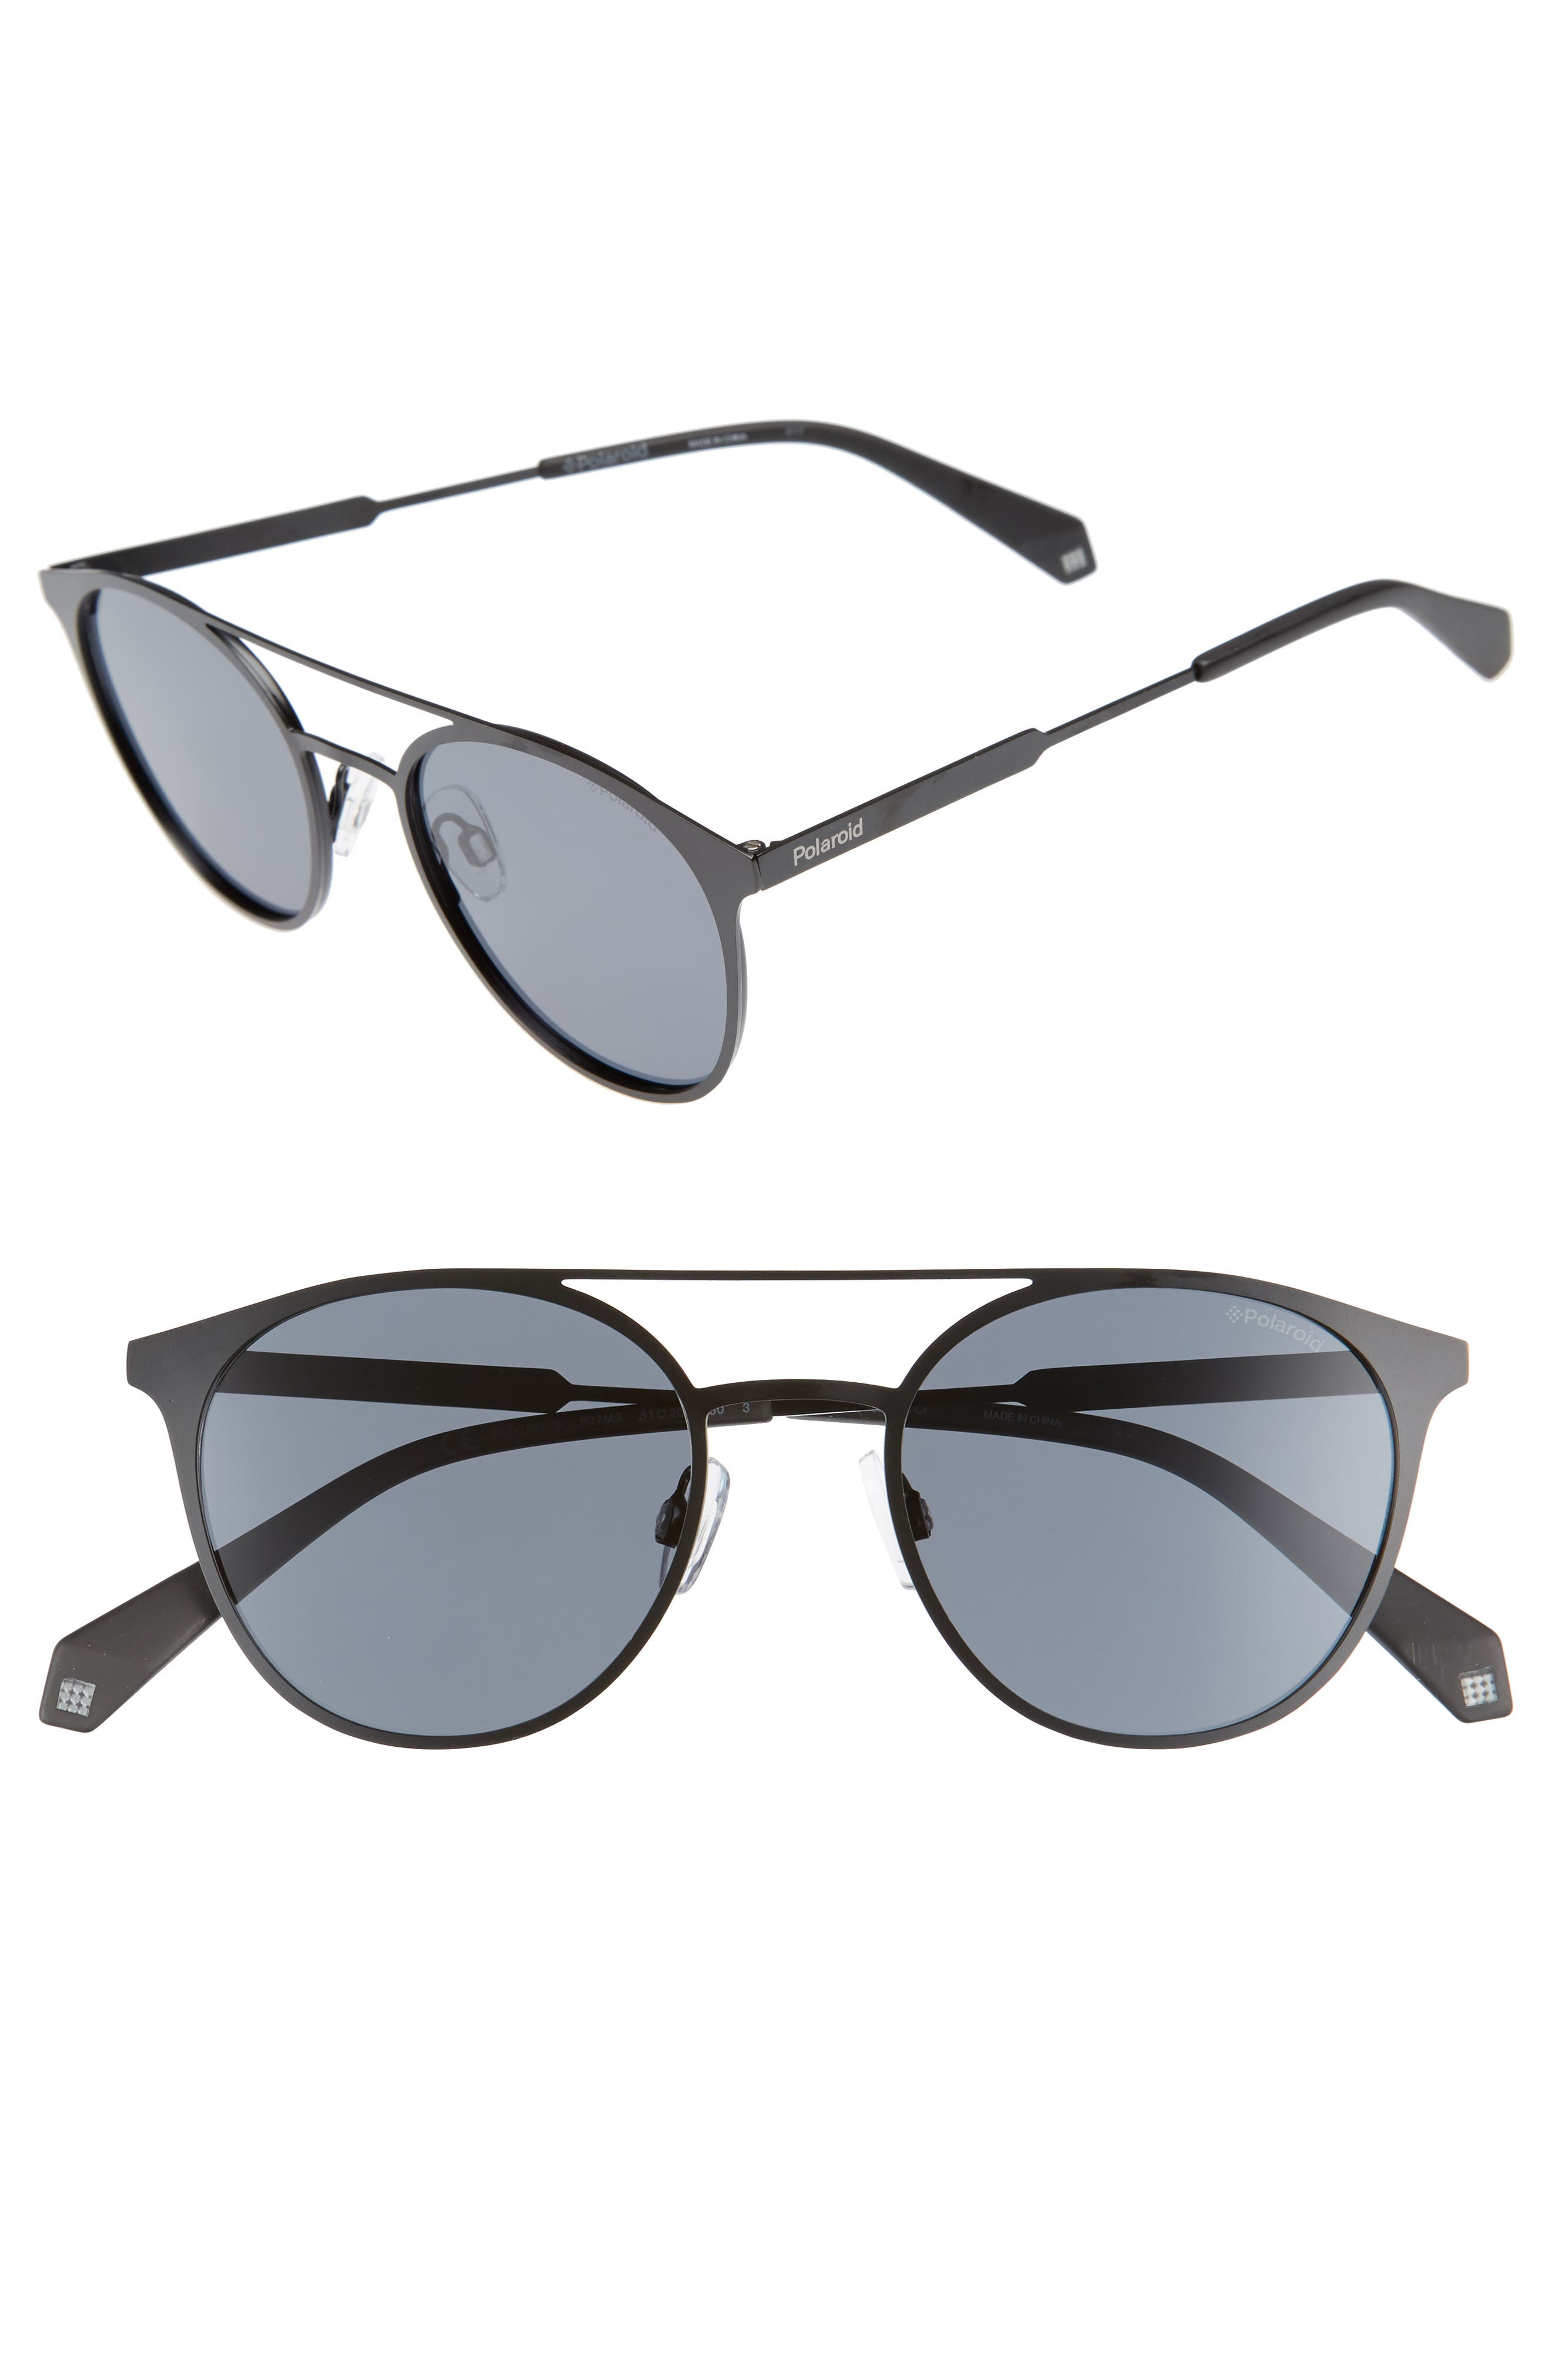 51mm Polarized Round Stainless Steel Sunglasses,                         Main,                         color, Black